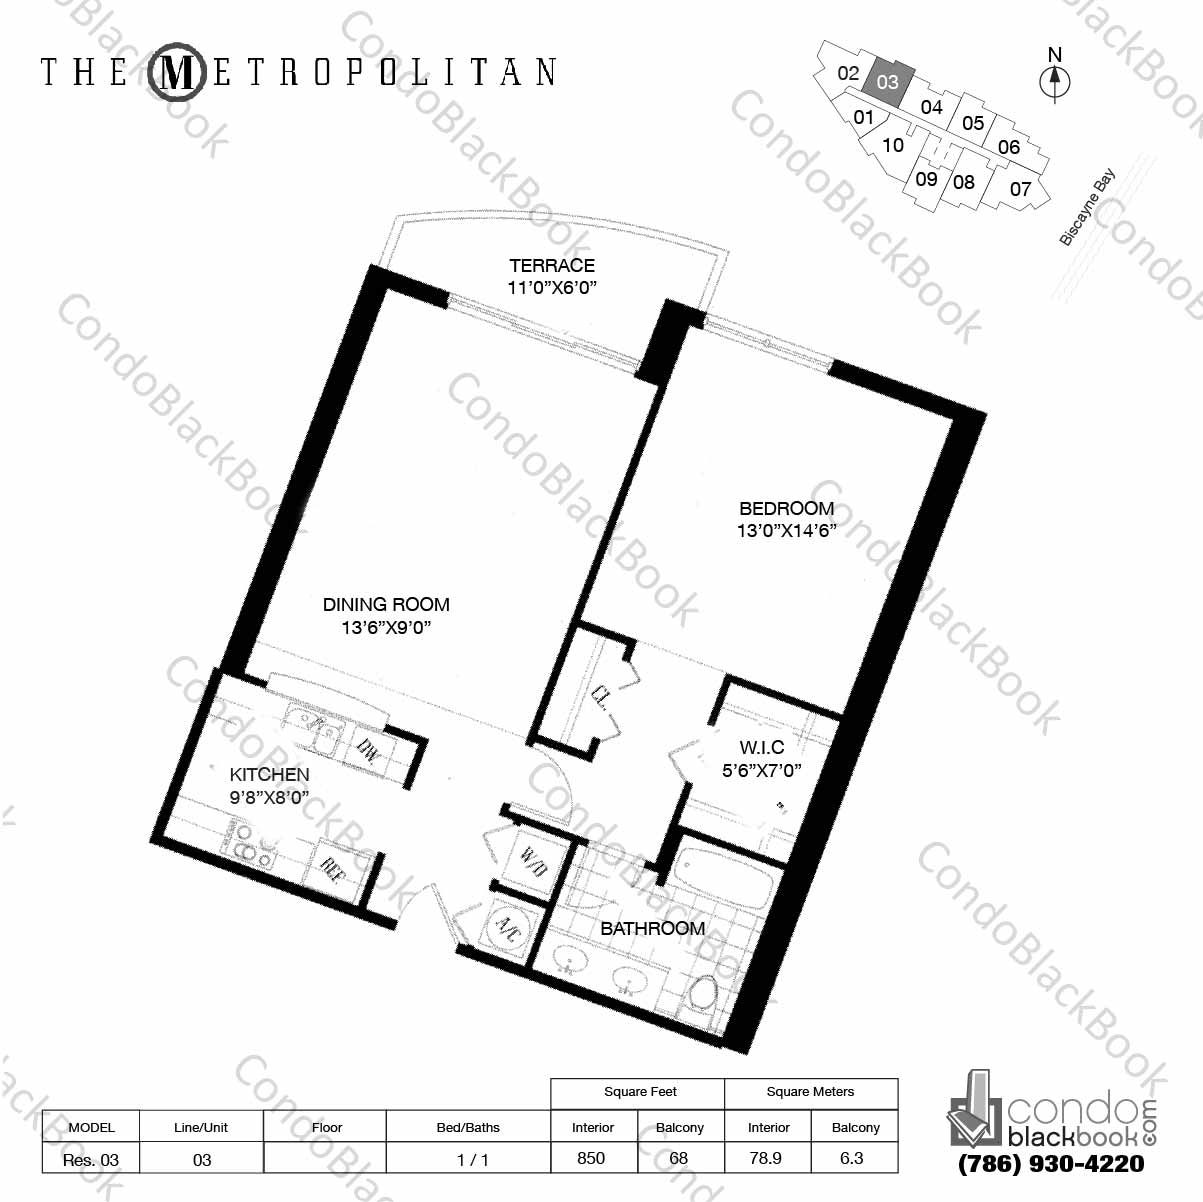 Floor plan for Metropolitan at Brickell Brickell Miami, model Res. 03, line 03, 1 / 1 bedrooms, 850 sq ft